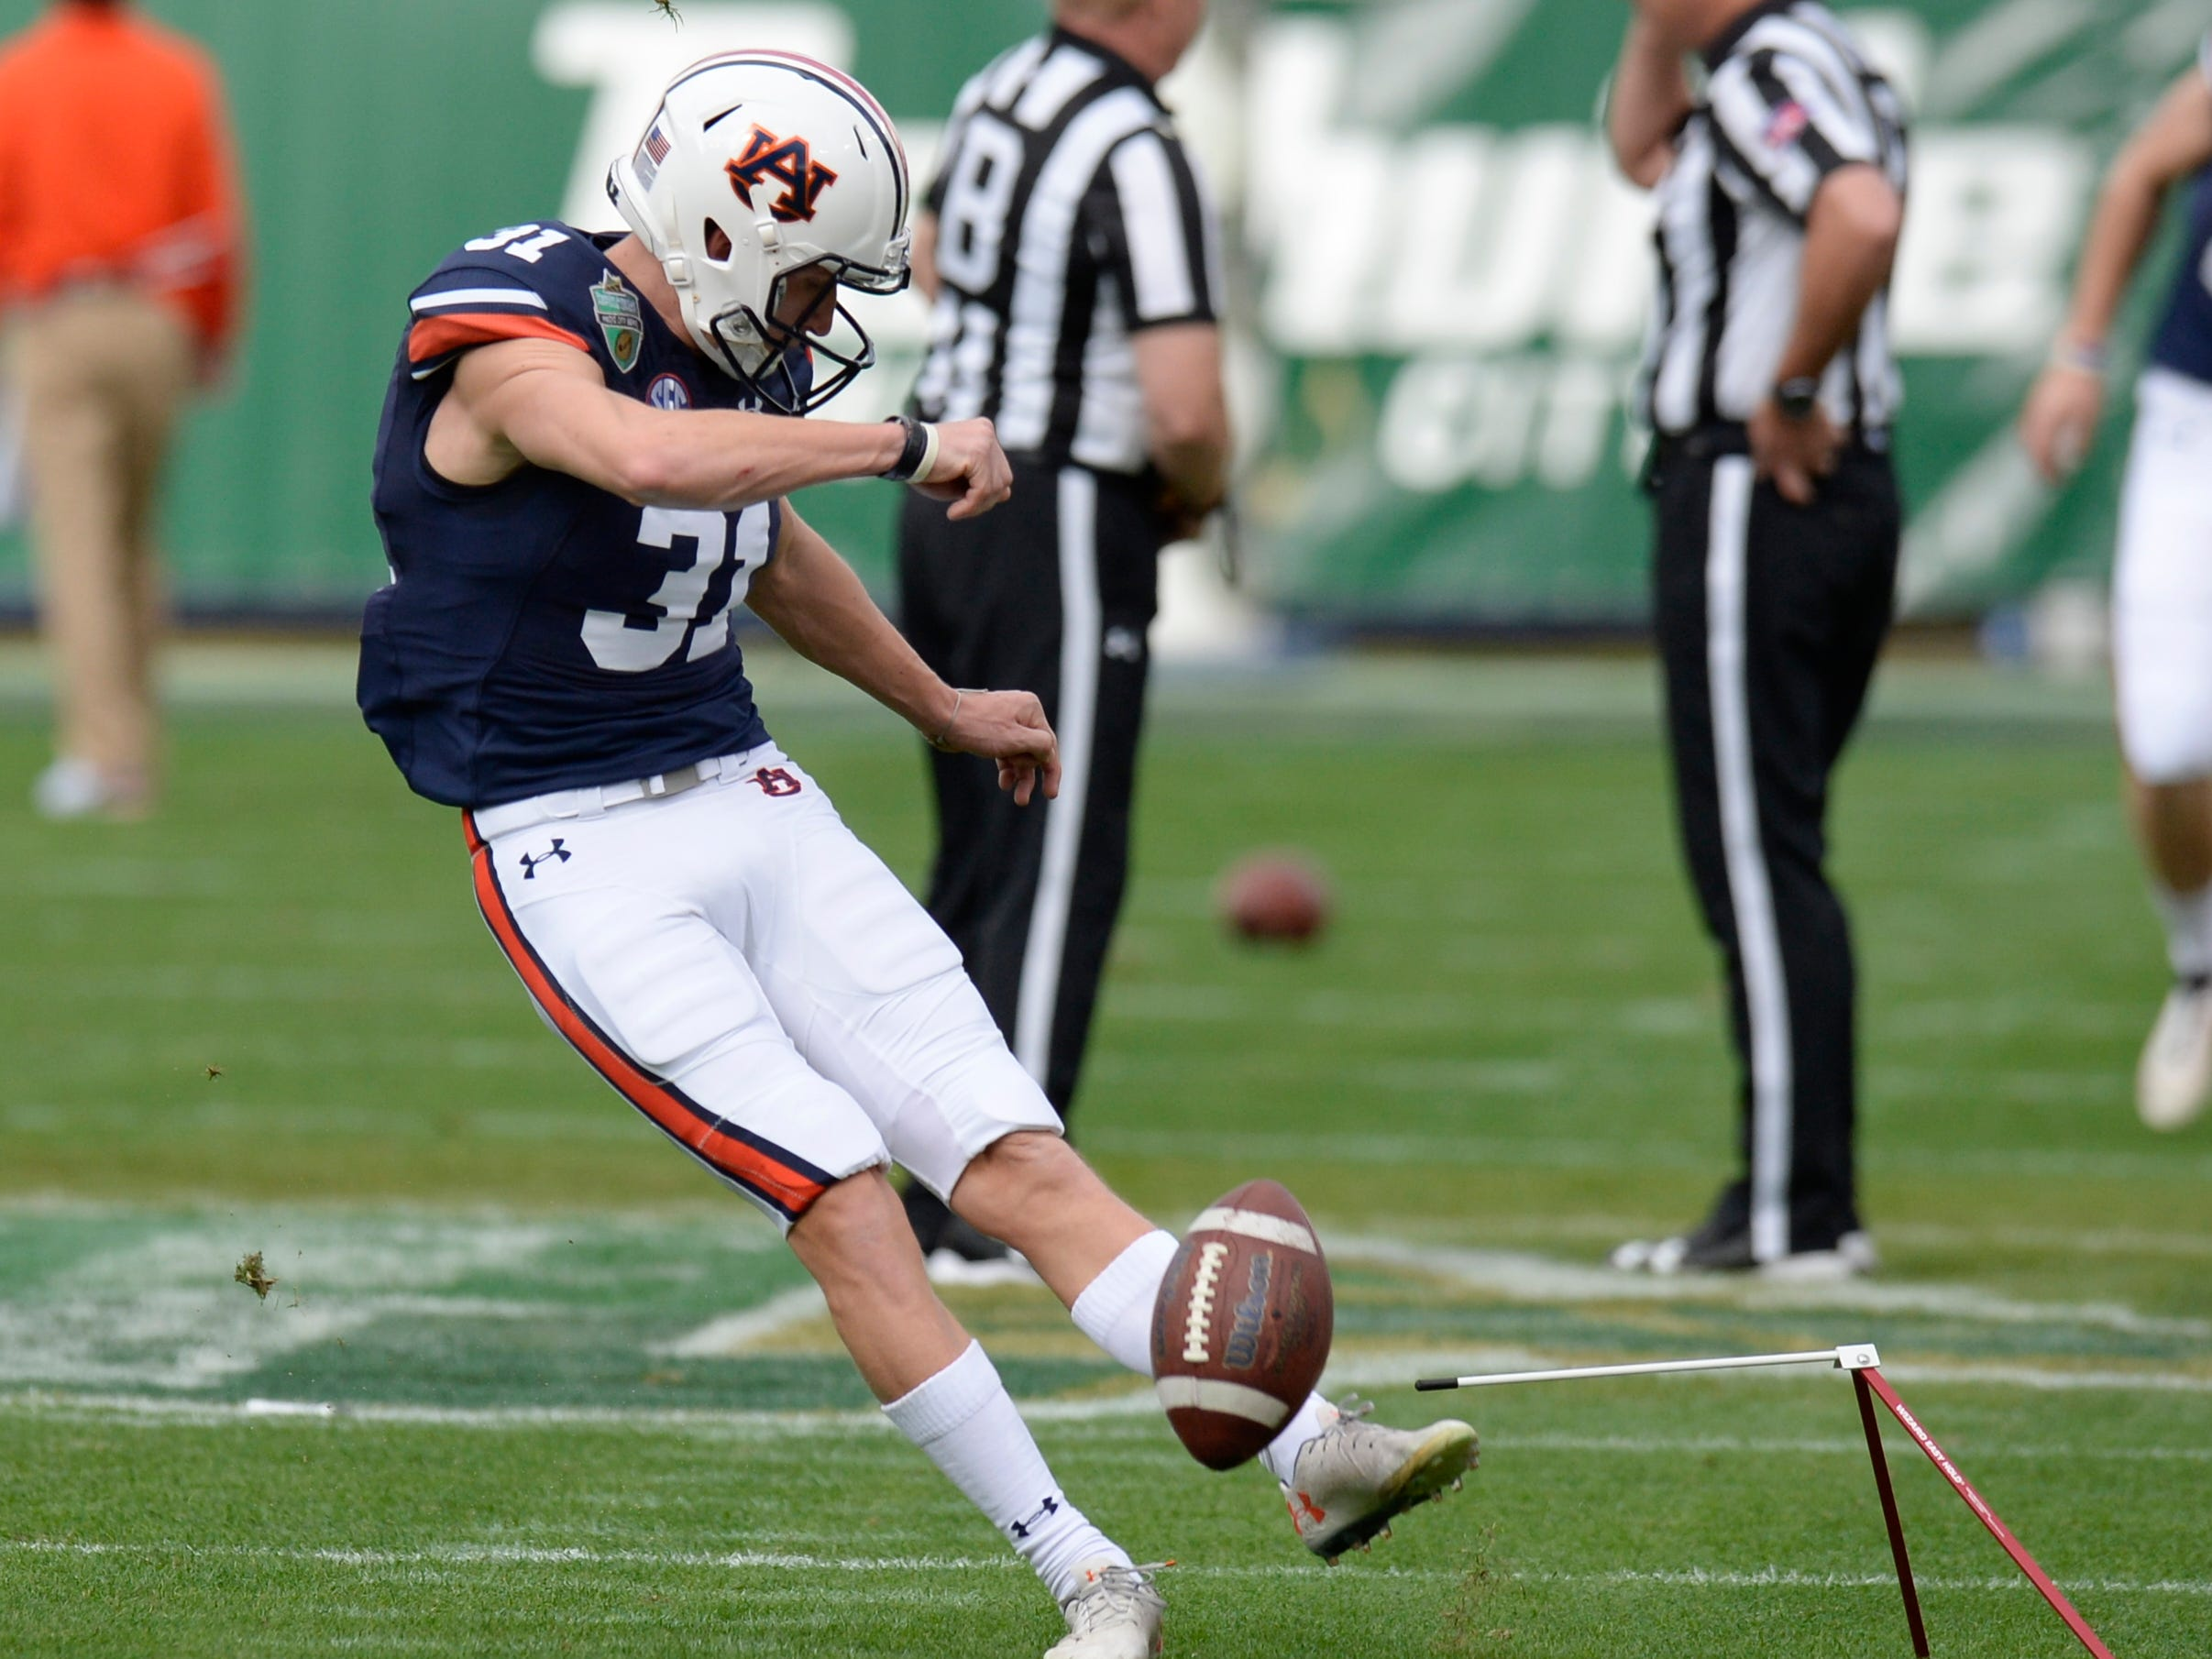 Auburn place kicker Sage Ledbetter (31) warms up before the start of the Music City Bowl NCAA college football game Friday, Dec. 28, 2018, at Nissan Stadium in Nashville, Tenn.